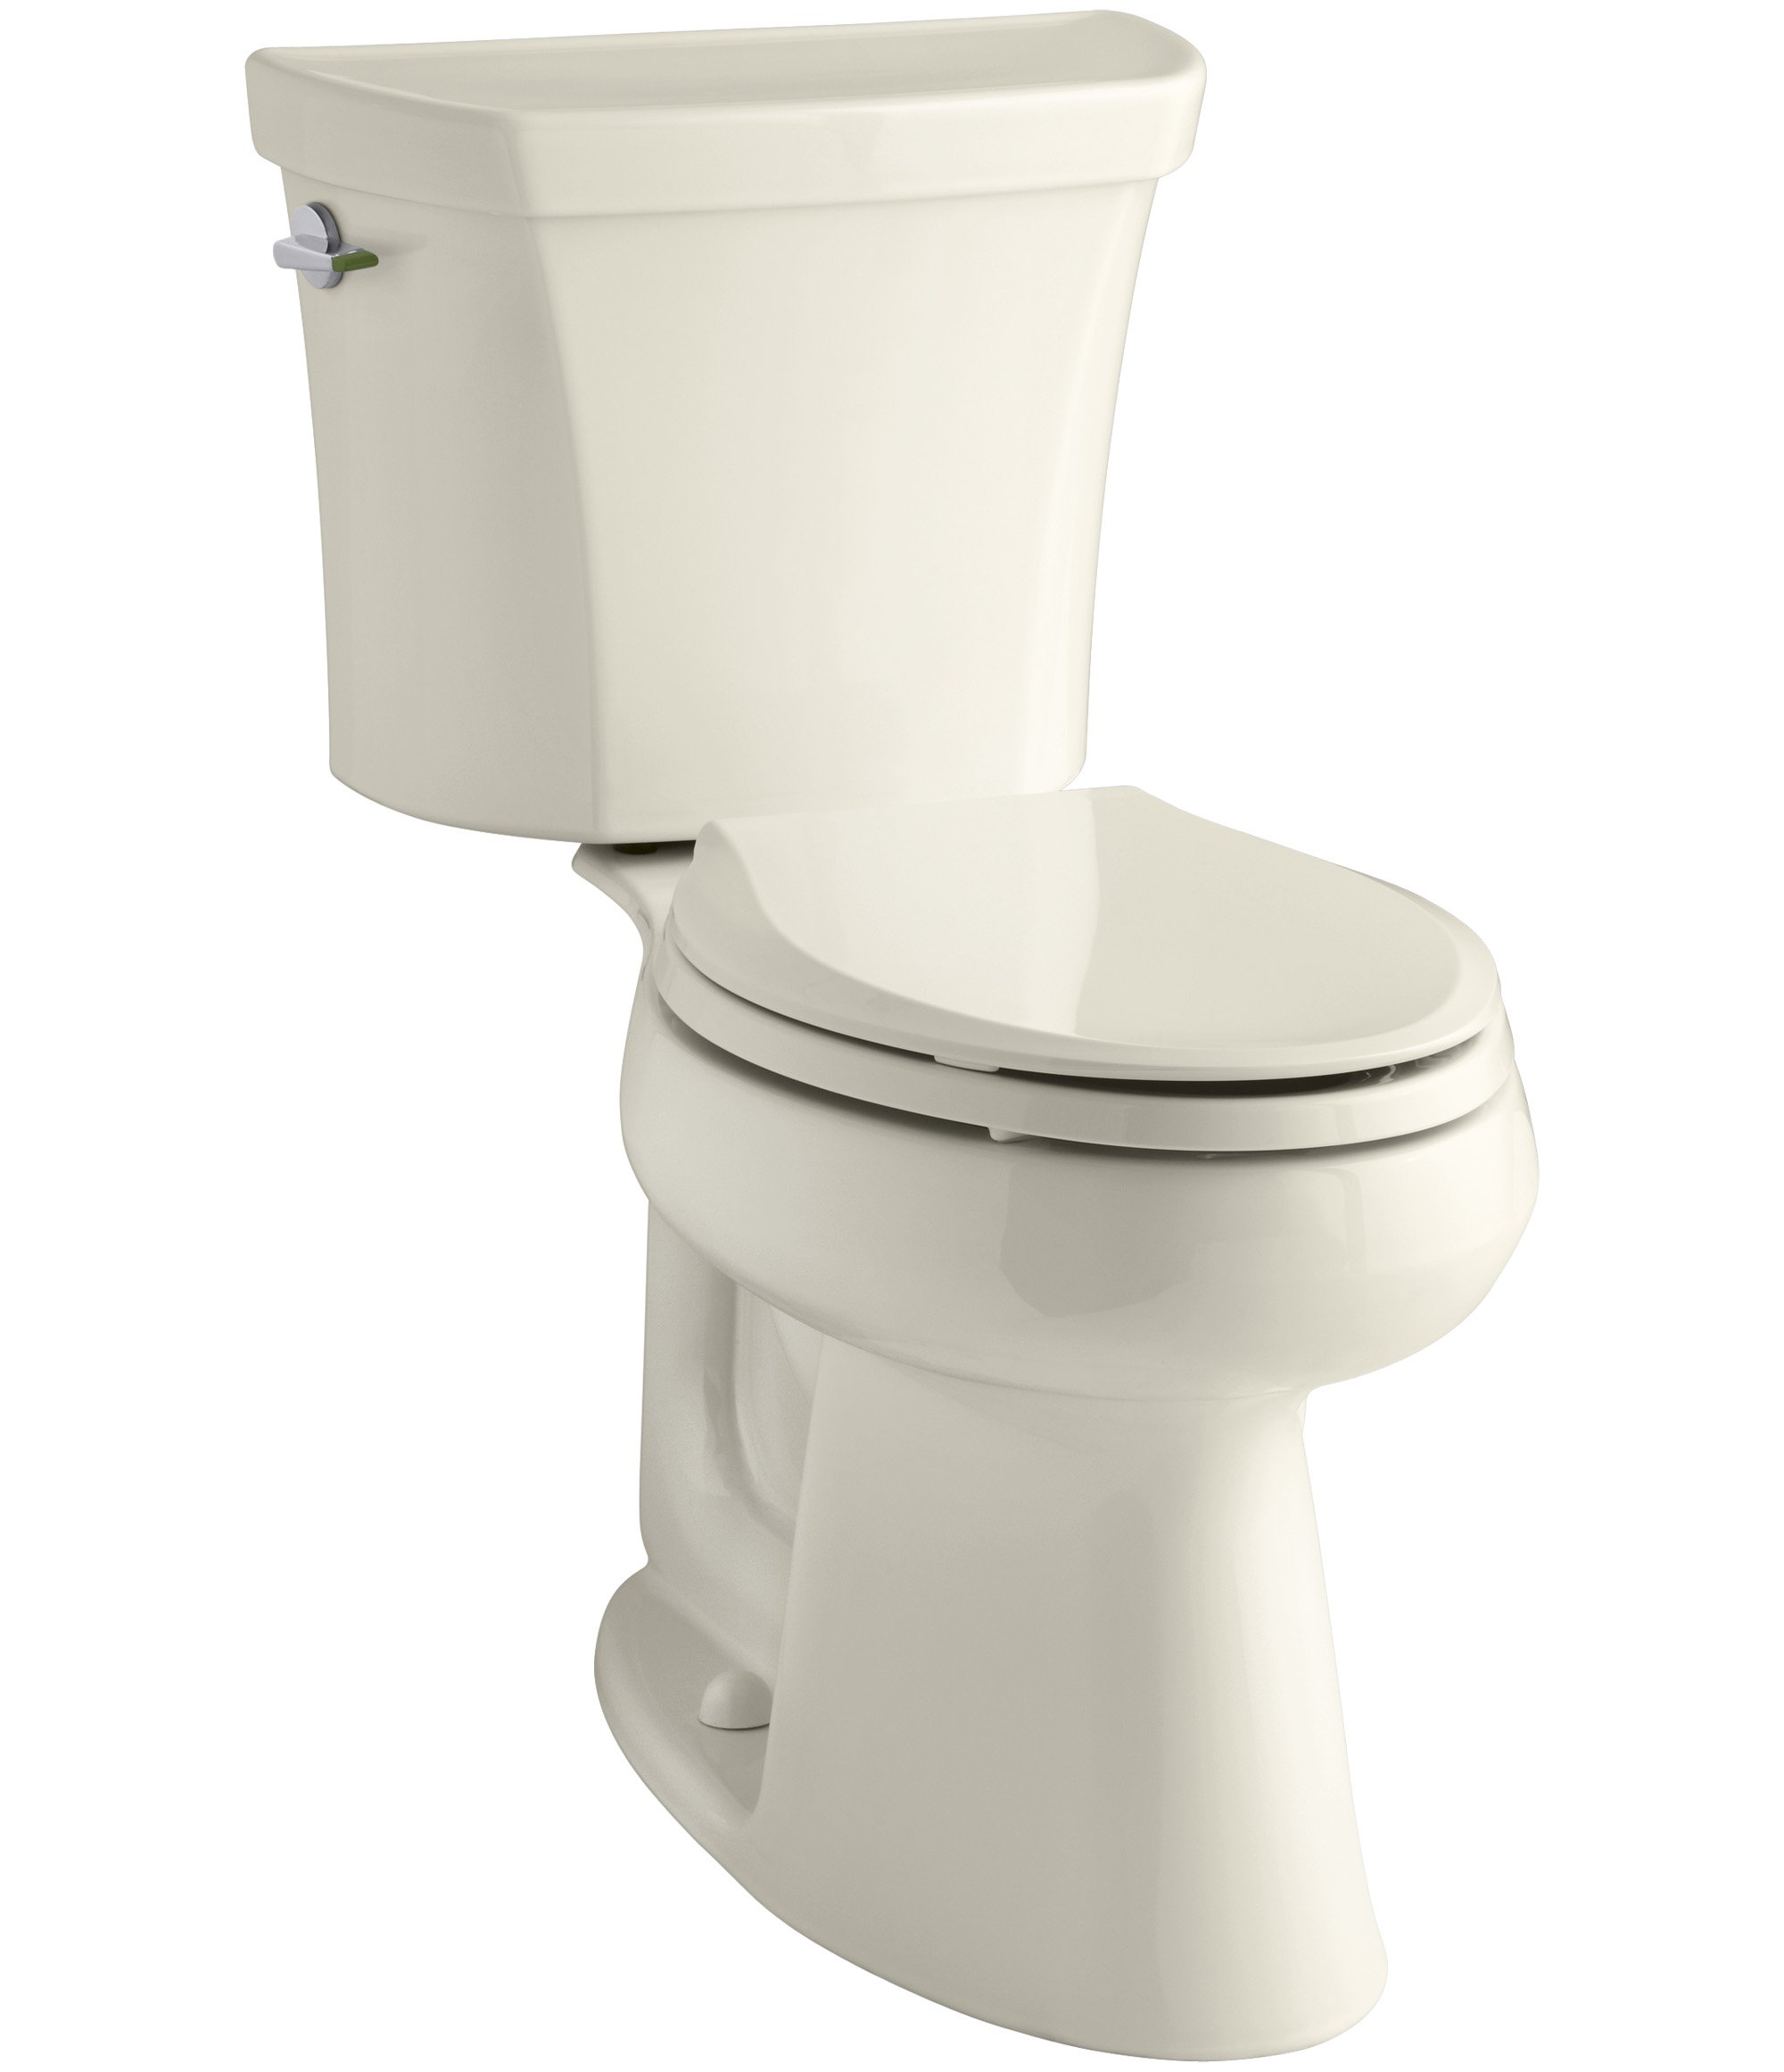 KOHLER K-3989-47 Wellworth Highline Two-Piece Dual-Flush Elongated Toilet with Class Five Flush System and Left-Hand Trip Lever, Almond by Kohler